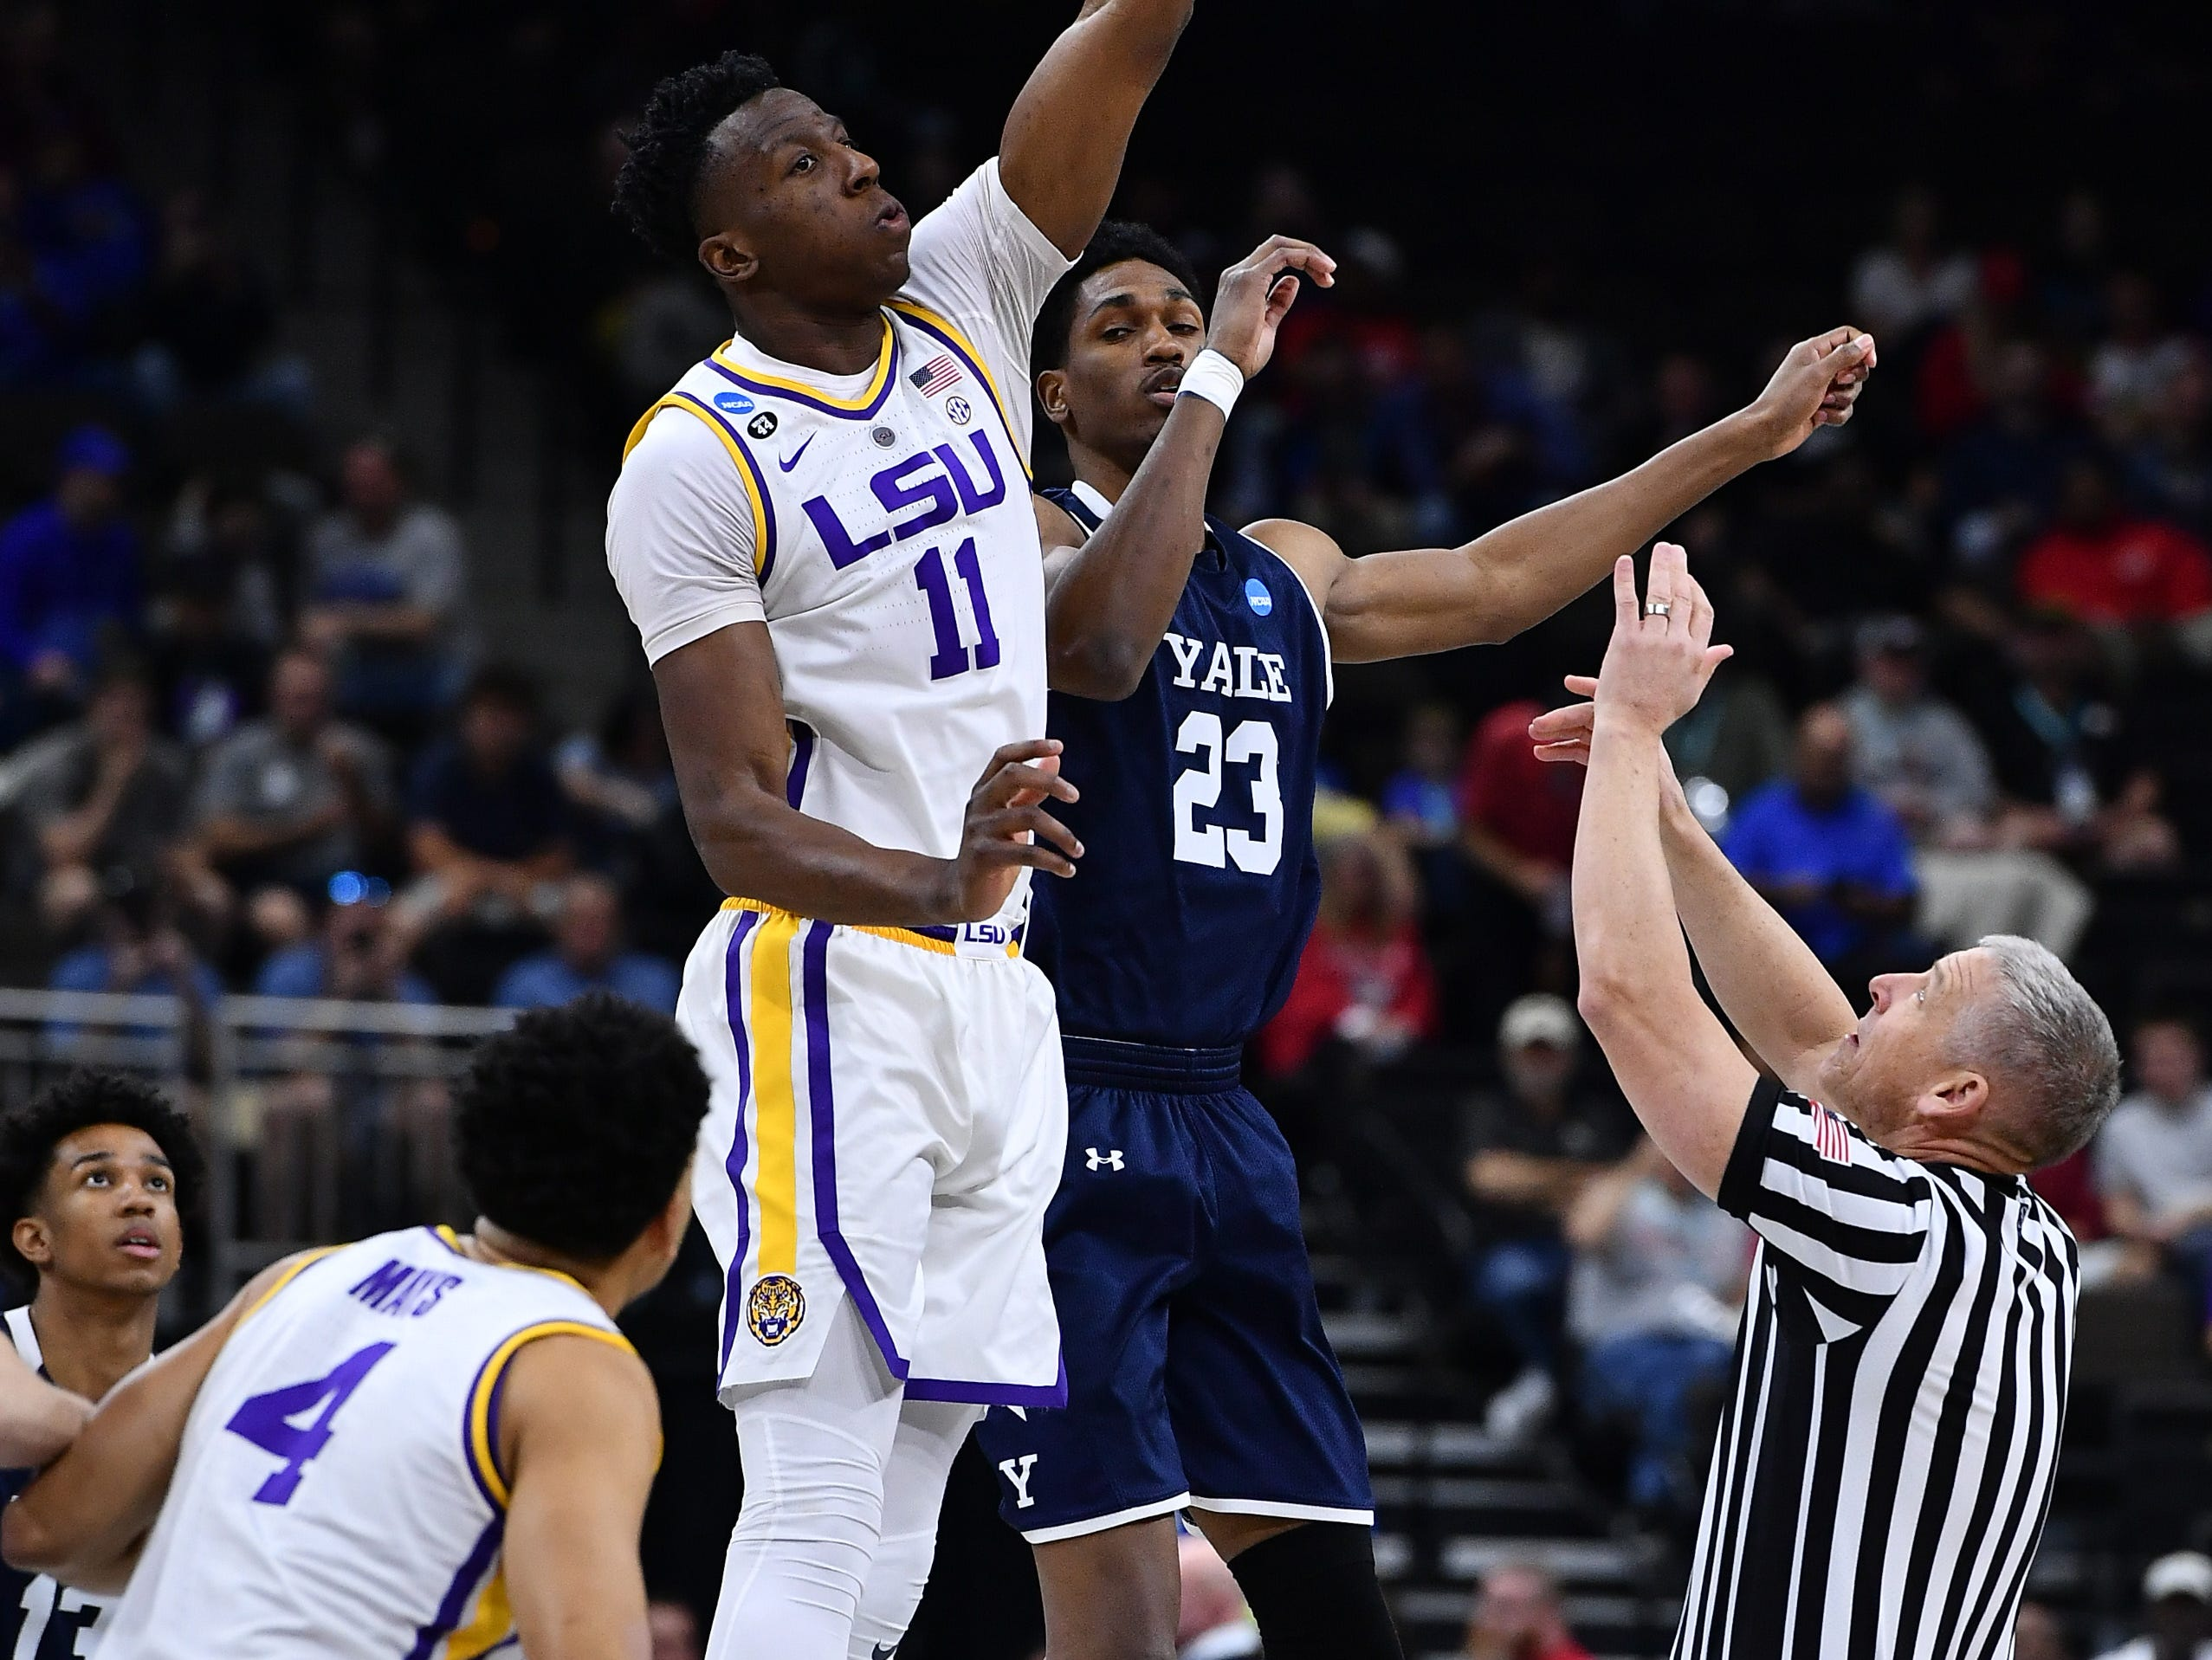 Mar 21, 2019; Jacksonville, FL, USA; LSU Tigers forward Kavell Bigby-Williams (11) wins the opening tip off against Yale Bulldogs forward Jordan Bruner (23) during the first half in the first round of the 2019 NCAA Tournament at Jacksonville Veterans Memorial Arena. Mandatory Credit: John David Mercer-USA TODAY Sports